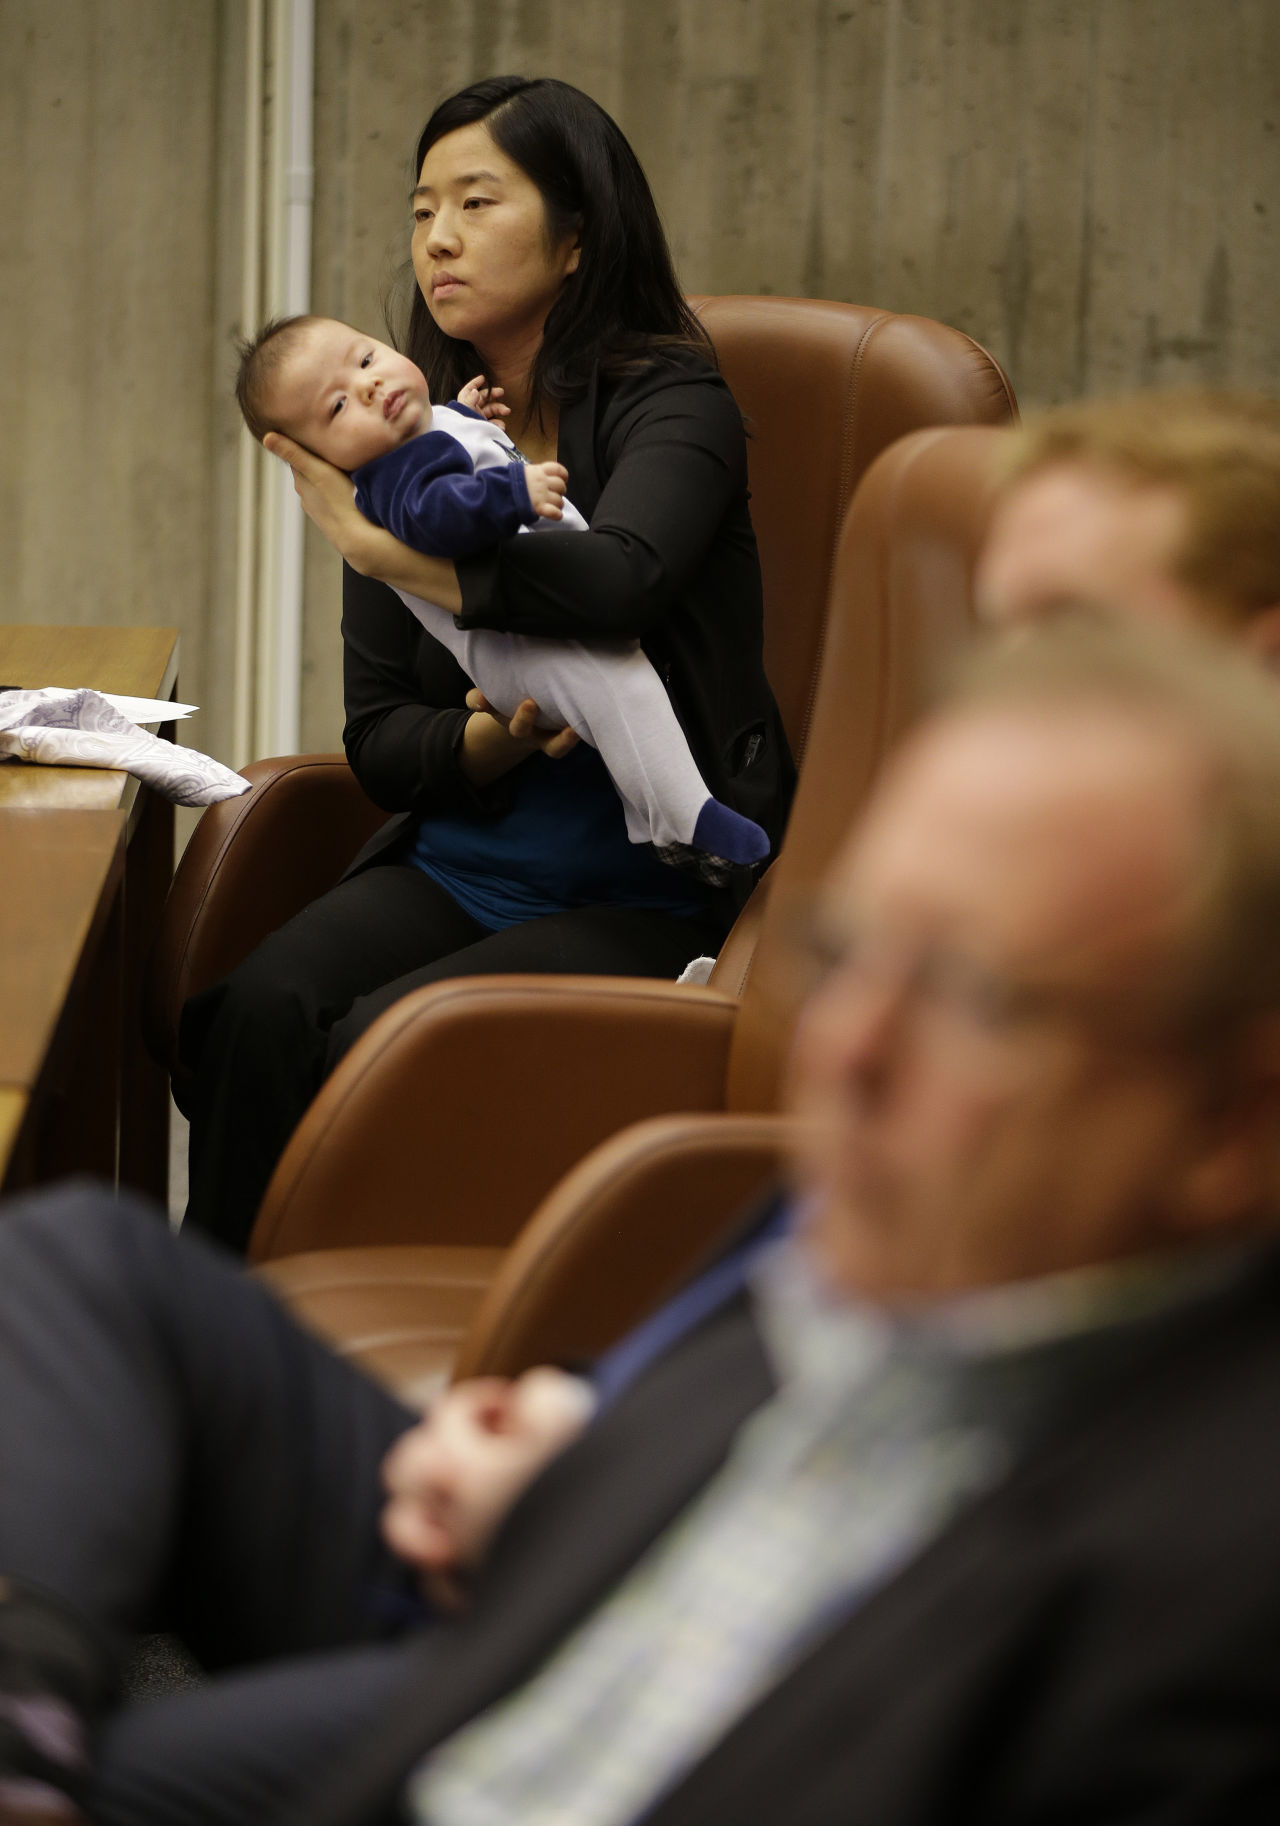 Boston City Councilwoman Michelle Wu holds her eleven week-old son Blaise Pawarski as members of Boston 2024 answer questions during the first meeting of the Boston City Council on the city's bid to be awarded the 2024 Summer Olympics, Friday March 6, 2015, at City Hall in Boston.  (AP)